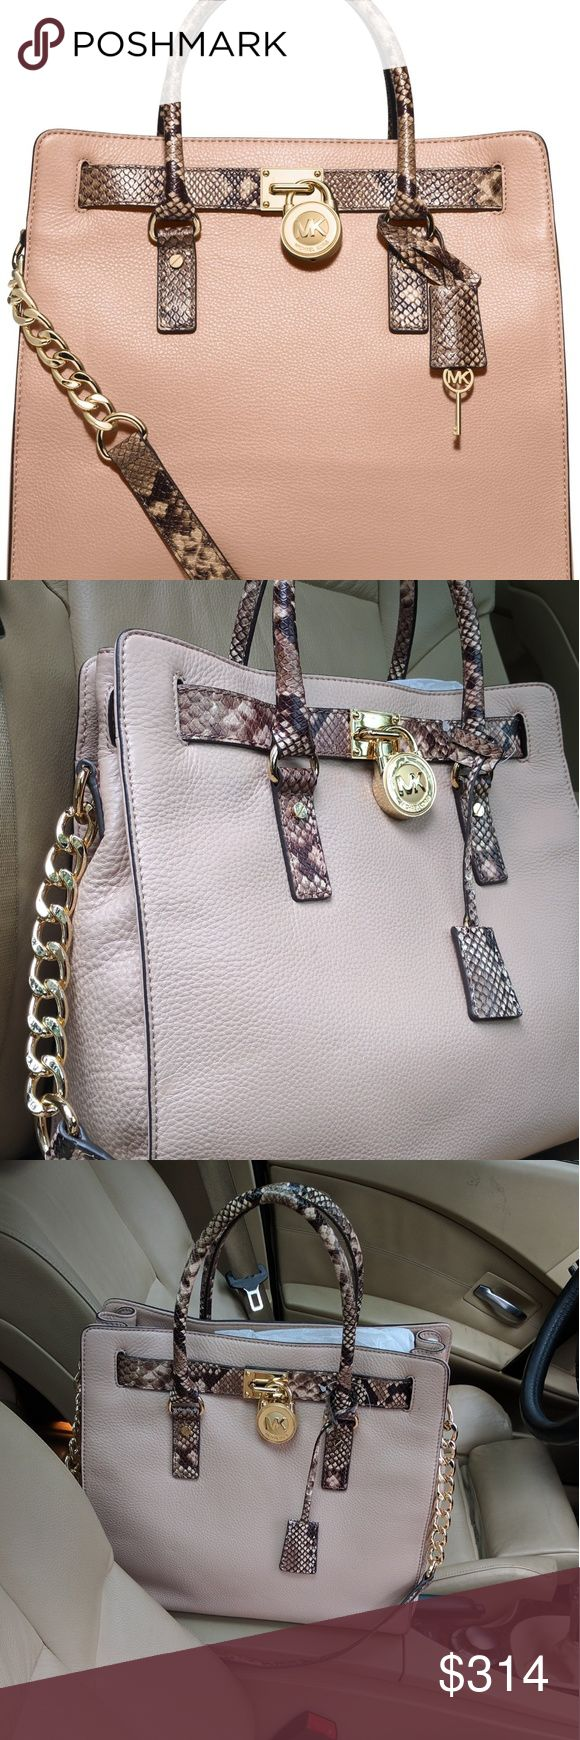 Nwt Michael kors Exotic Blush Hamilton n/s Tote New with tags never been used snake online Hamilton in Blush colored leather. Gold hardware. Stunning. No trades please. Michael Kors Bags Totes